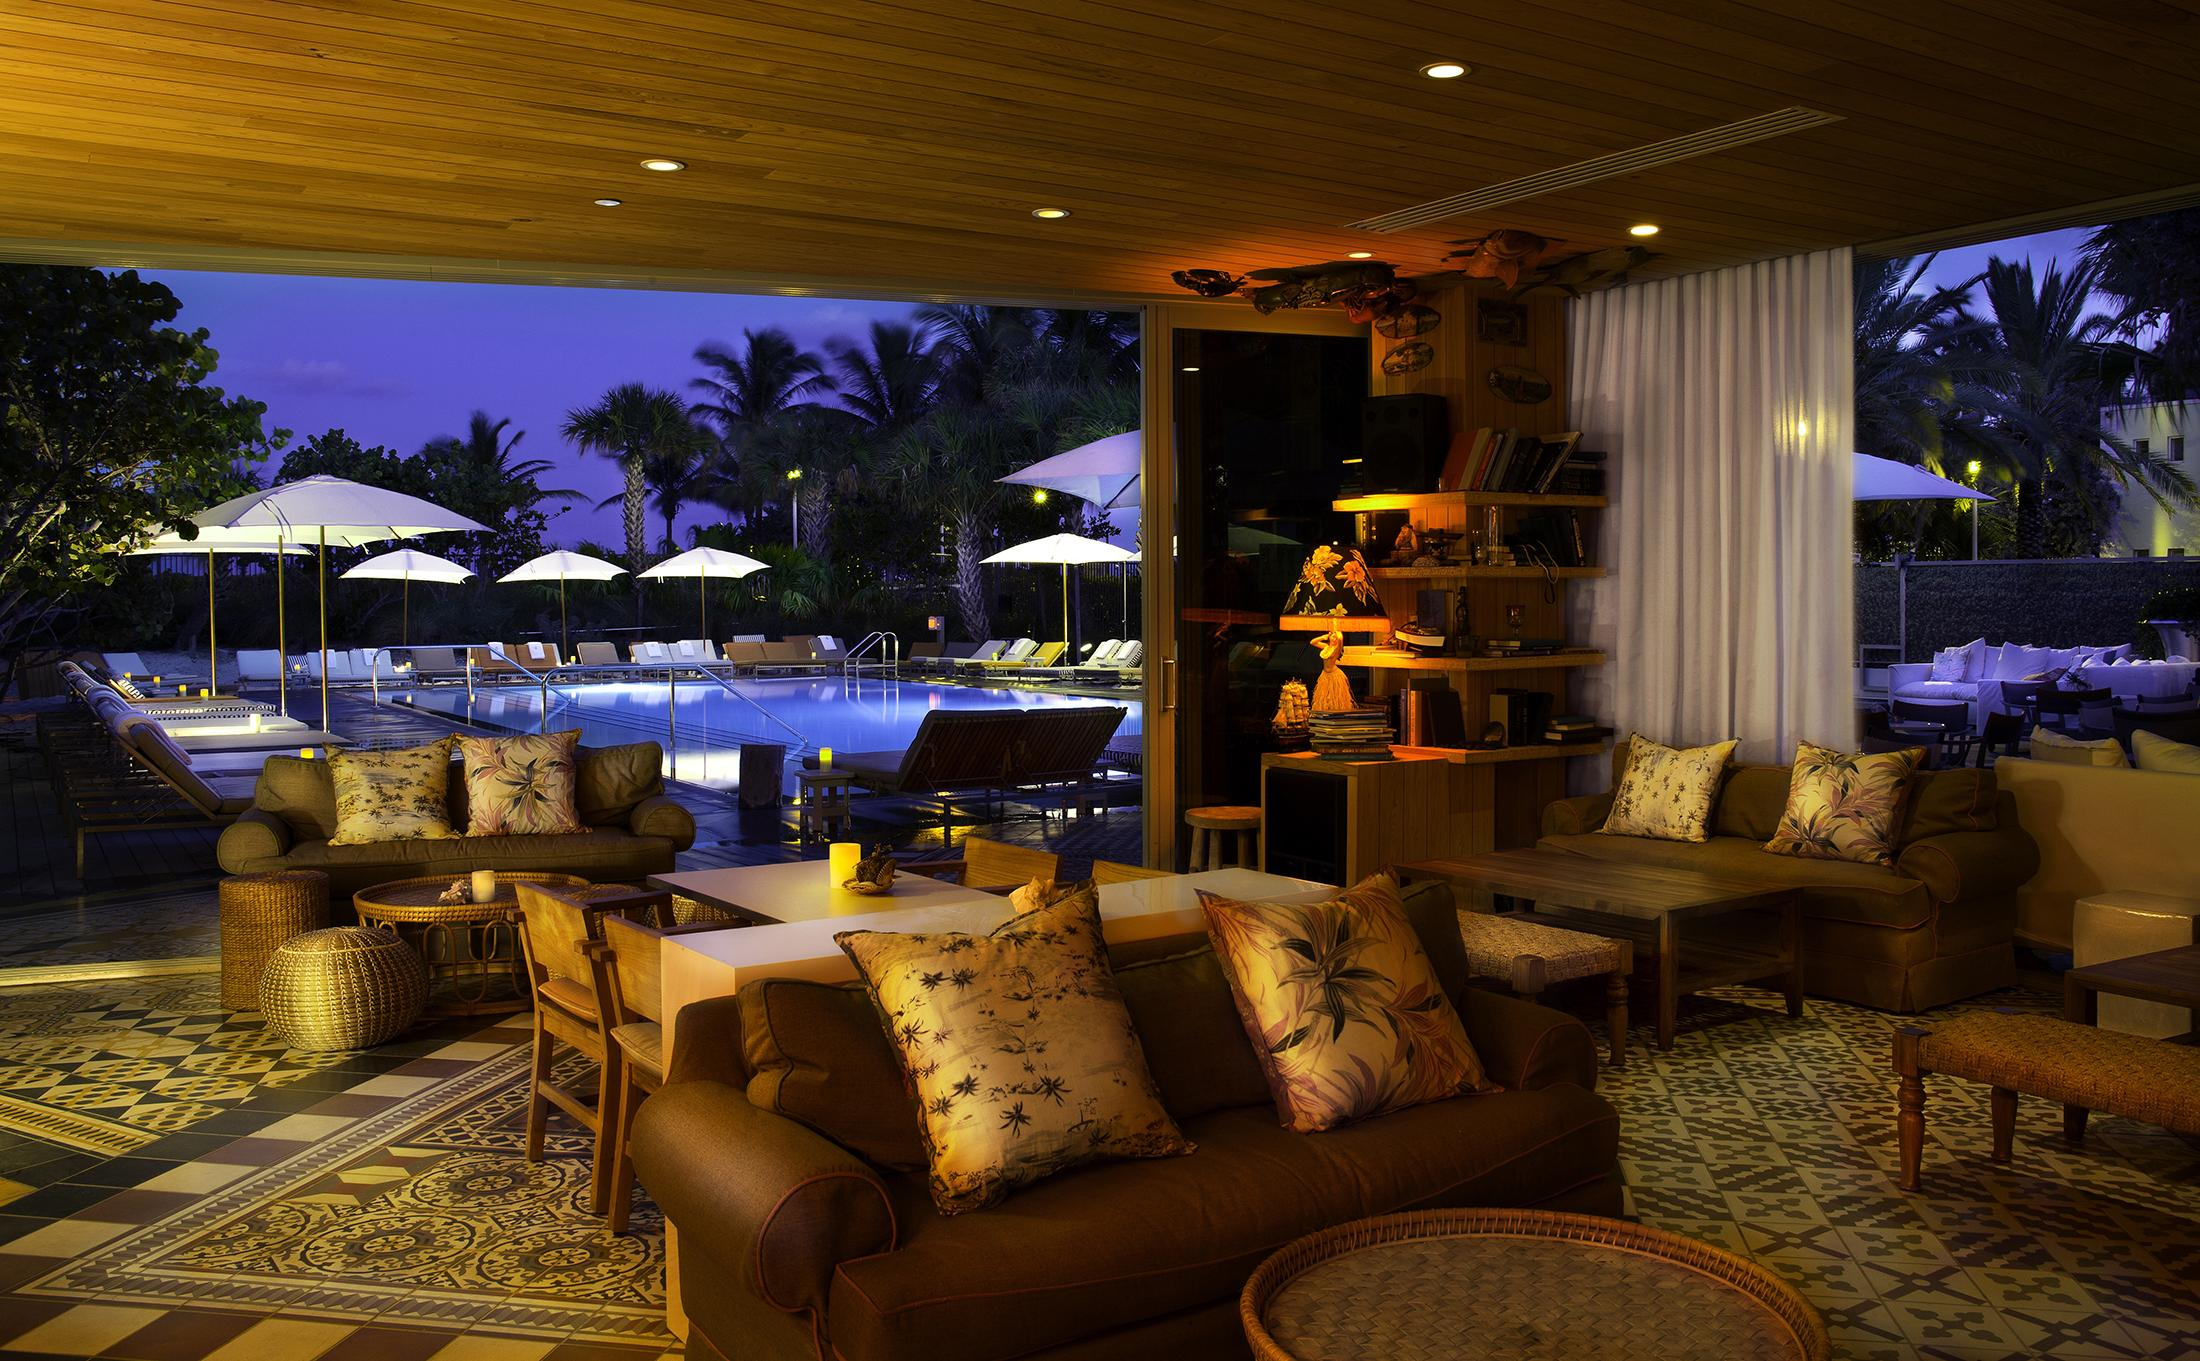 Hyde Beach outdoor pool lounge area at night